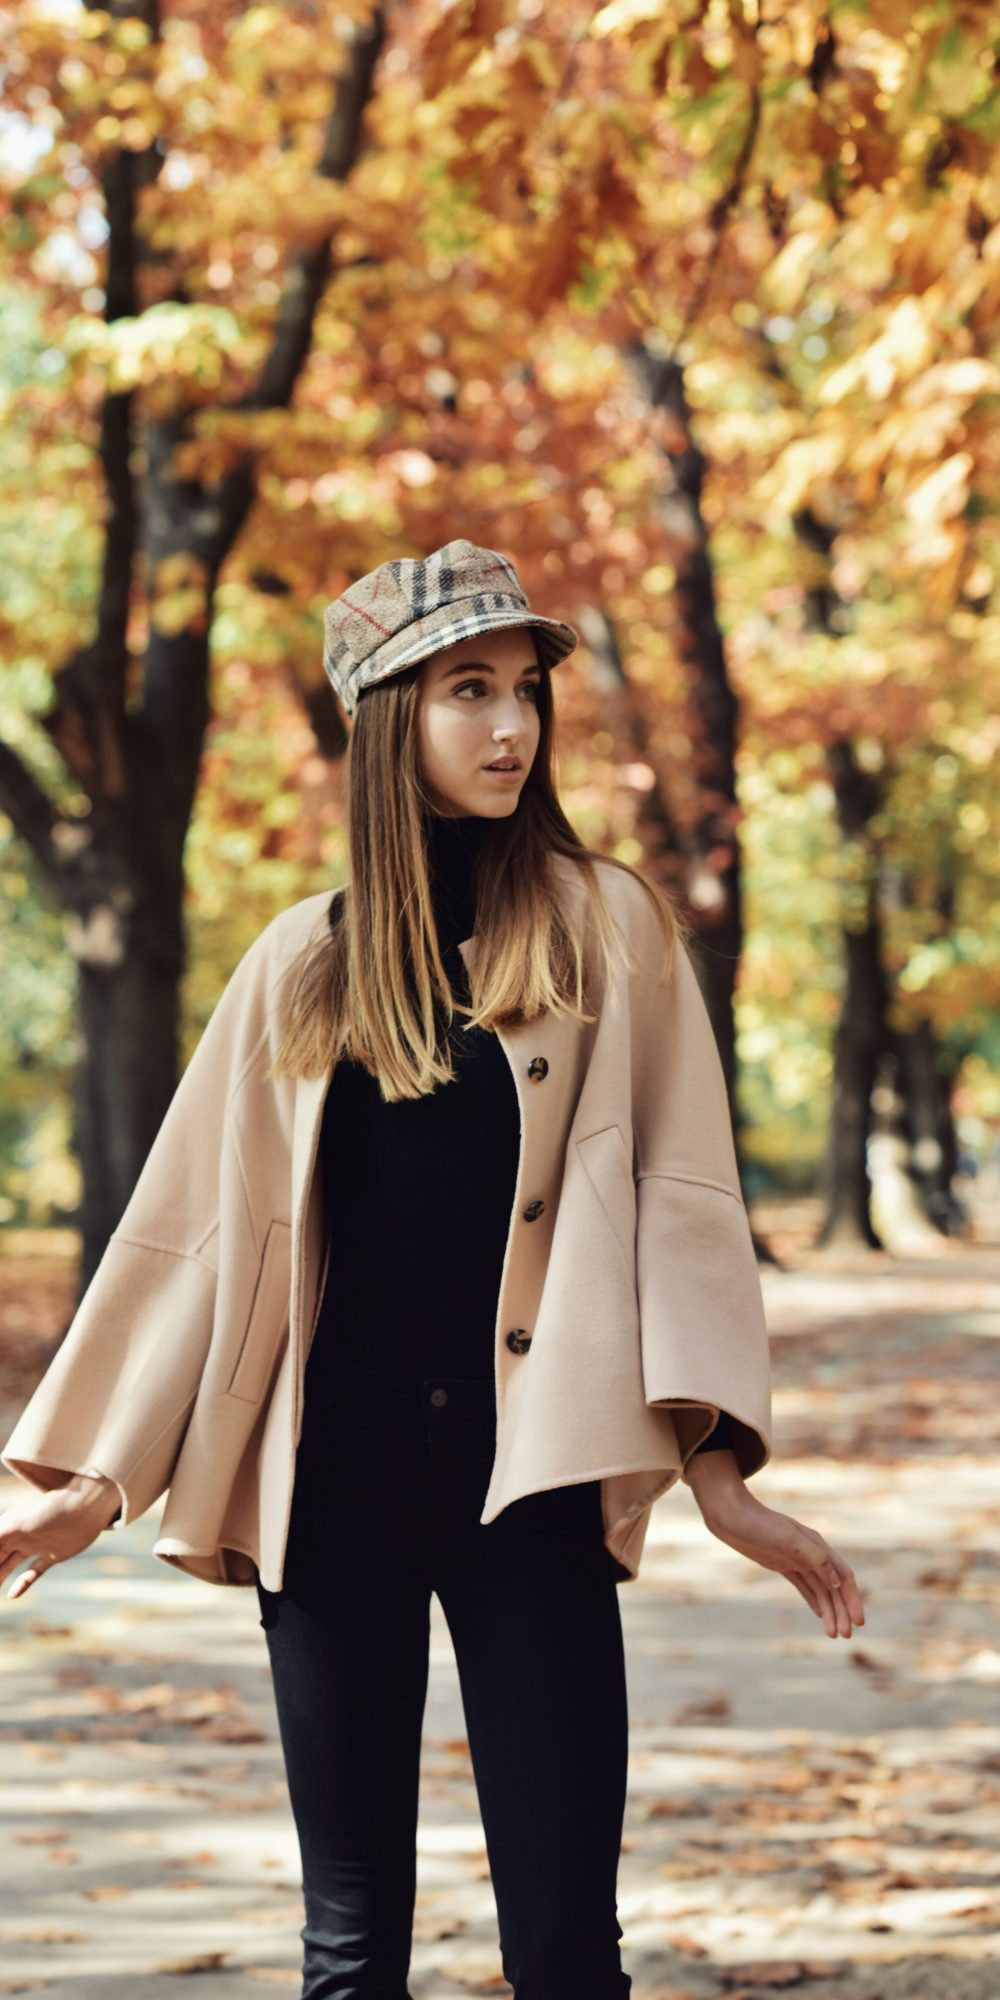 Beige & Black | Autumn Chic